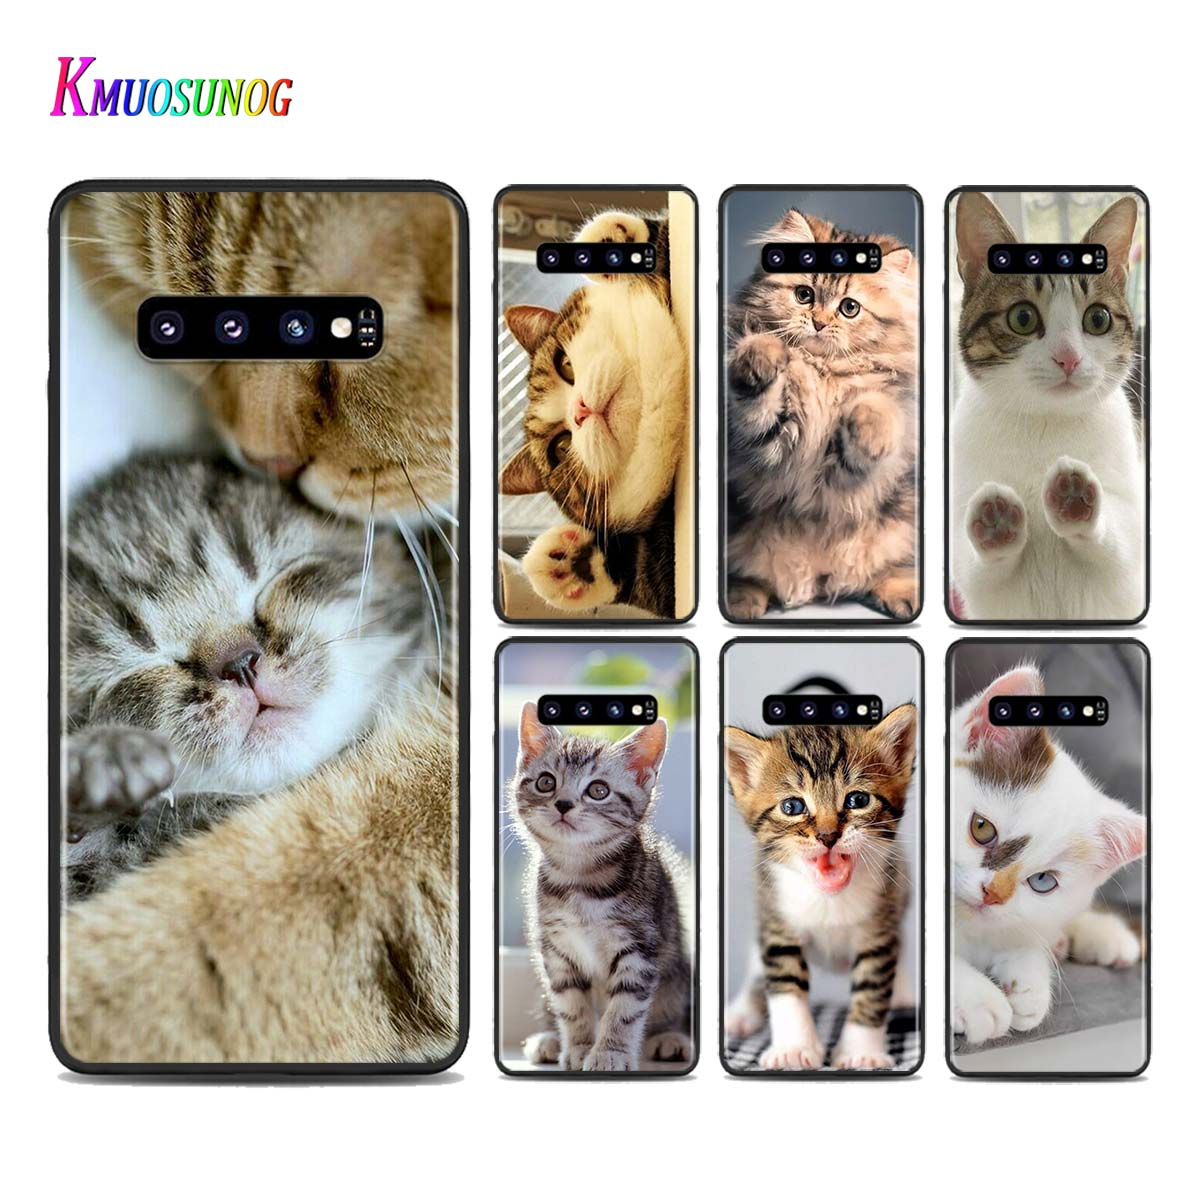 Silicone Black Cover <font><b>Funny</b></font> Kitten Cat for <font><b>Samsung</b></font> Galaxy <font><b>Note</b></font> 10 Pro <font><b>9</b></font> 8 Plus S10 5G S9 S8 S7 Plus S6 Phone <font><b>case</b></font> image